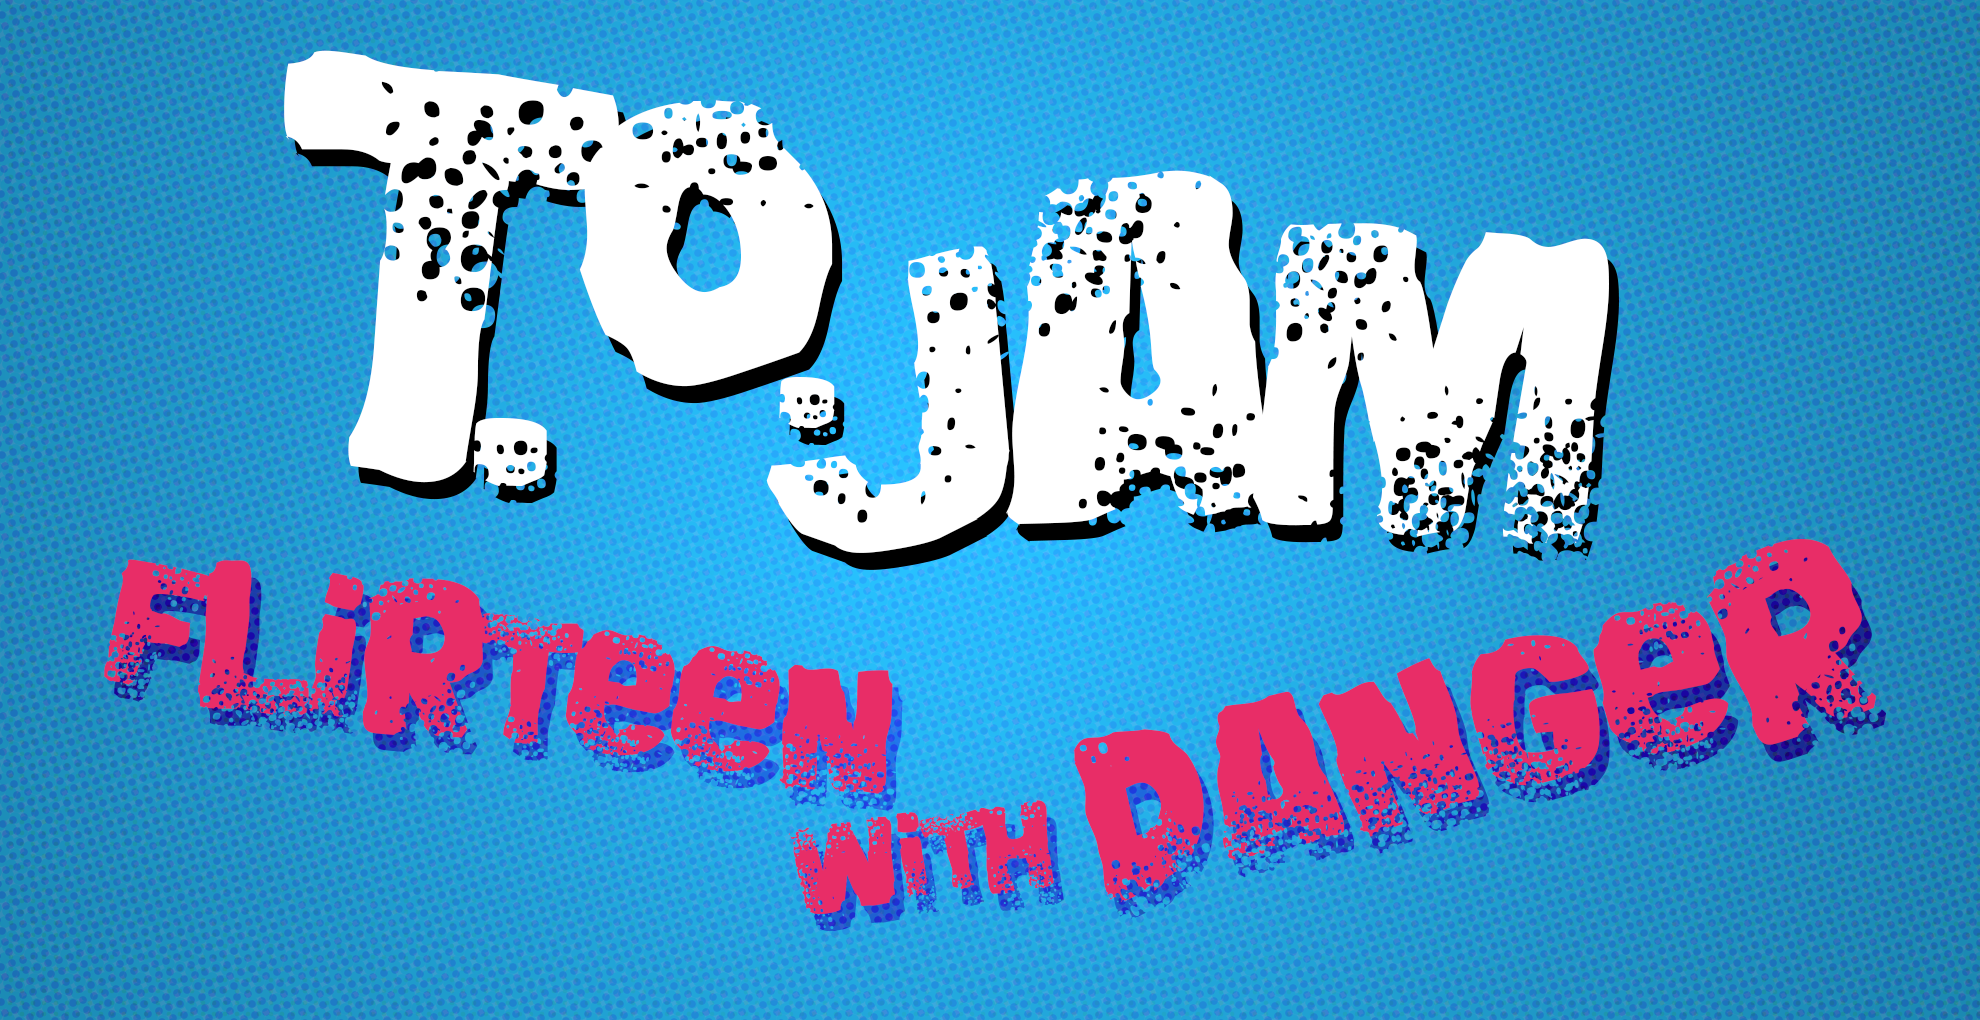 tojam fliteen with danger